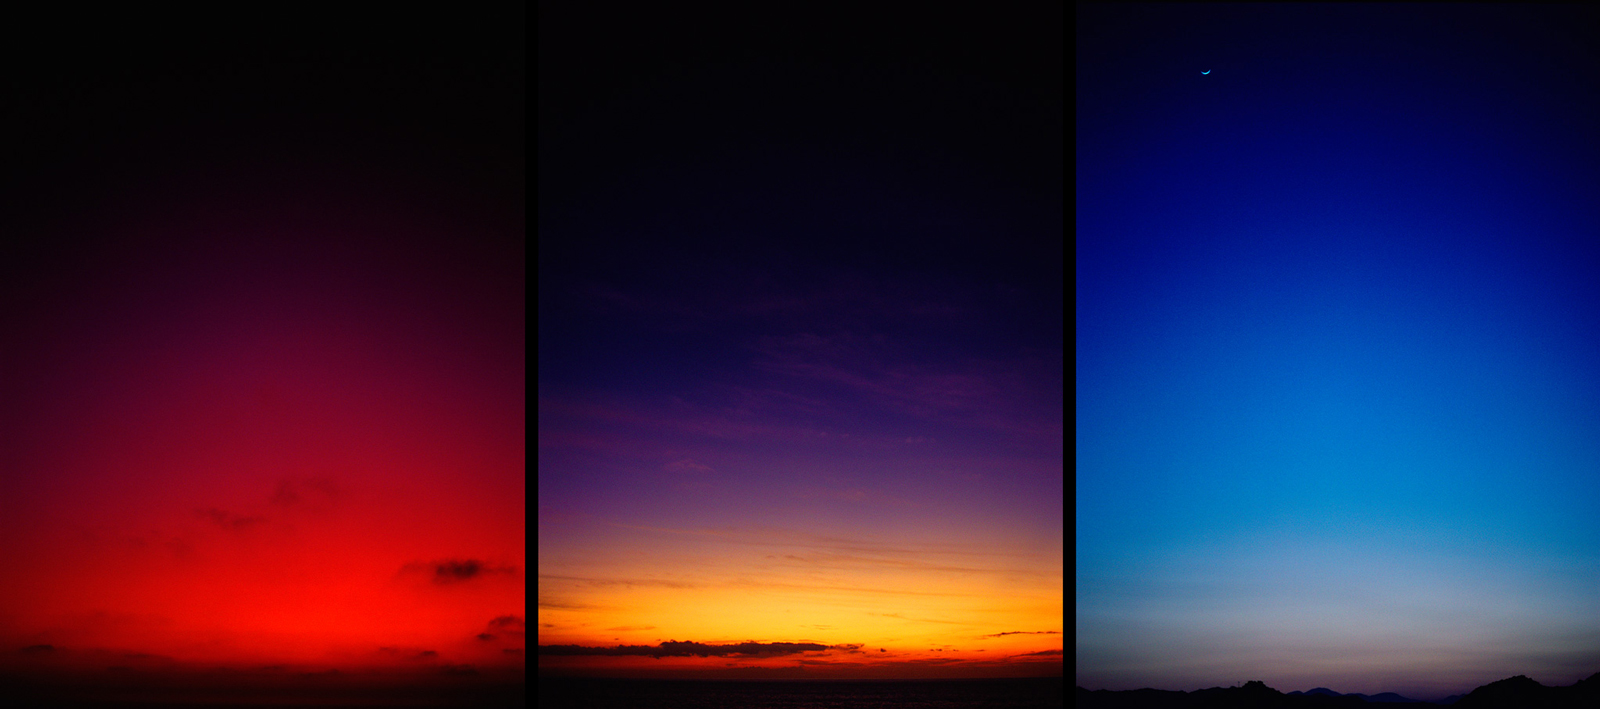 Glen Wexler |  Mountains Desert  Sea sky triptych